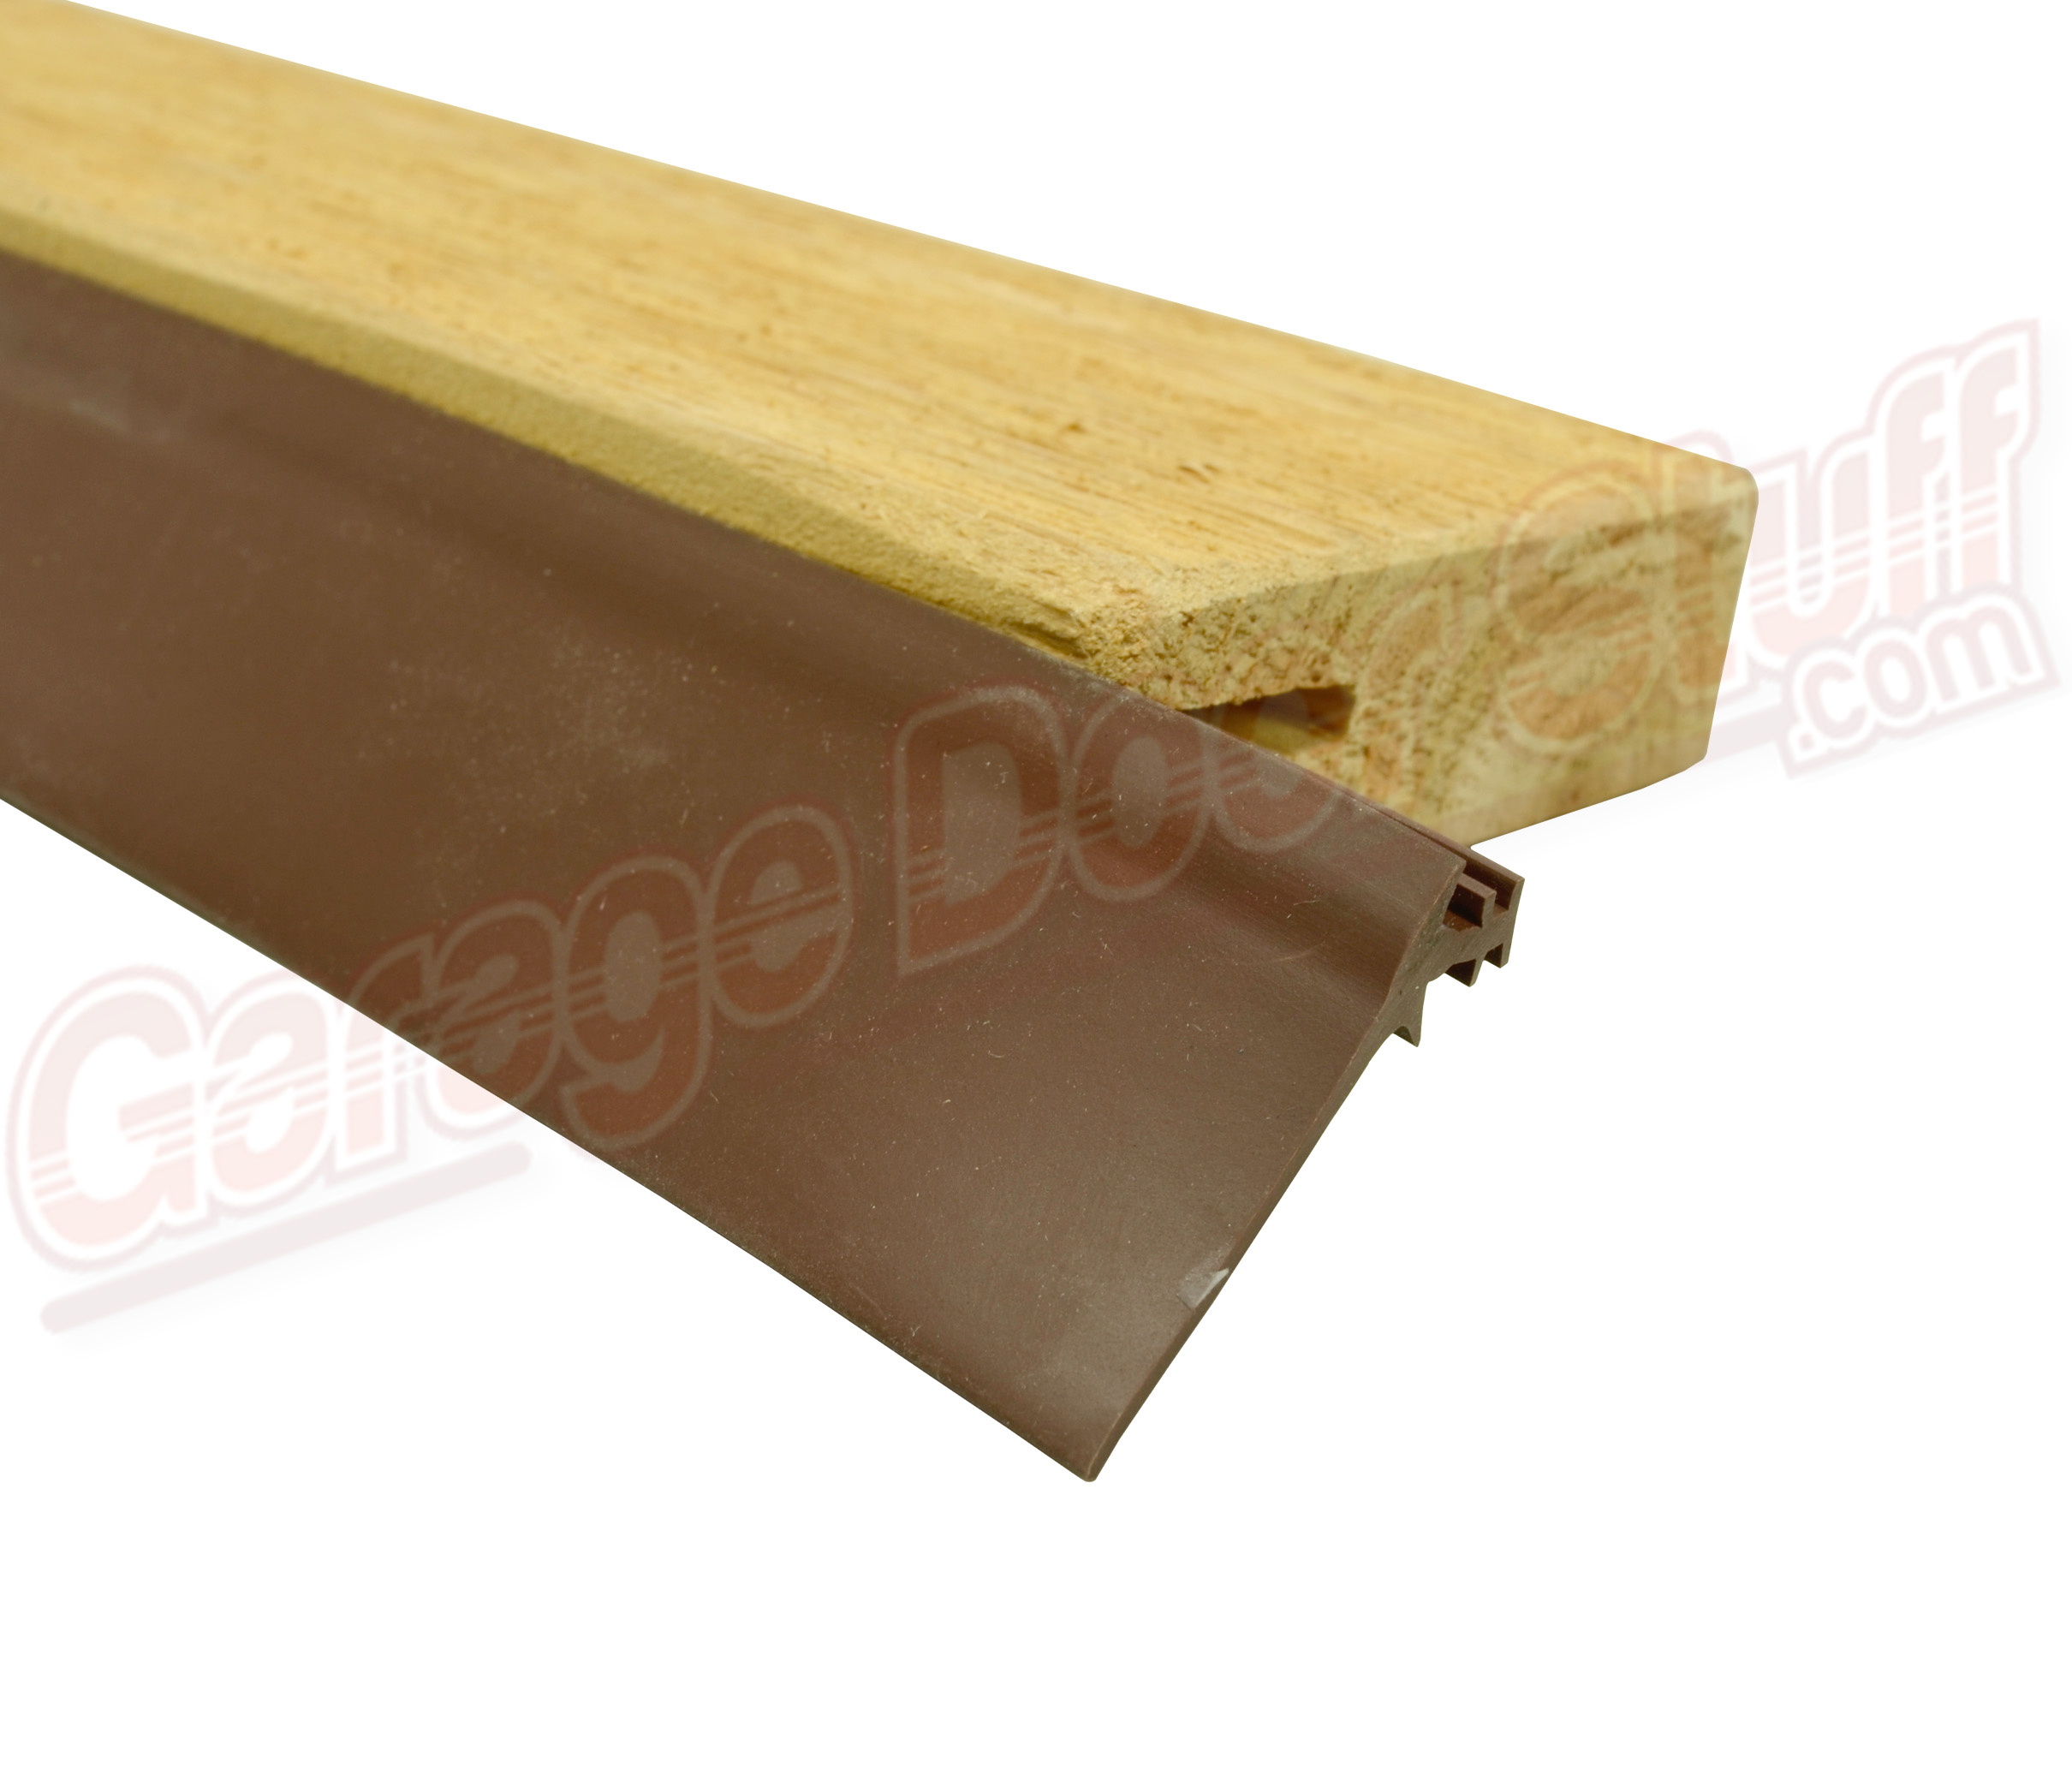 Wood garage door stop moulding garage door stuff wood garage door stop moulding rubansaba